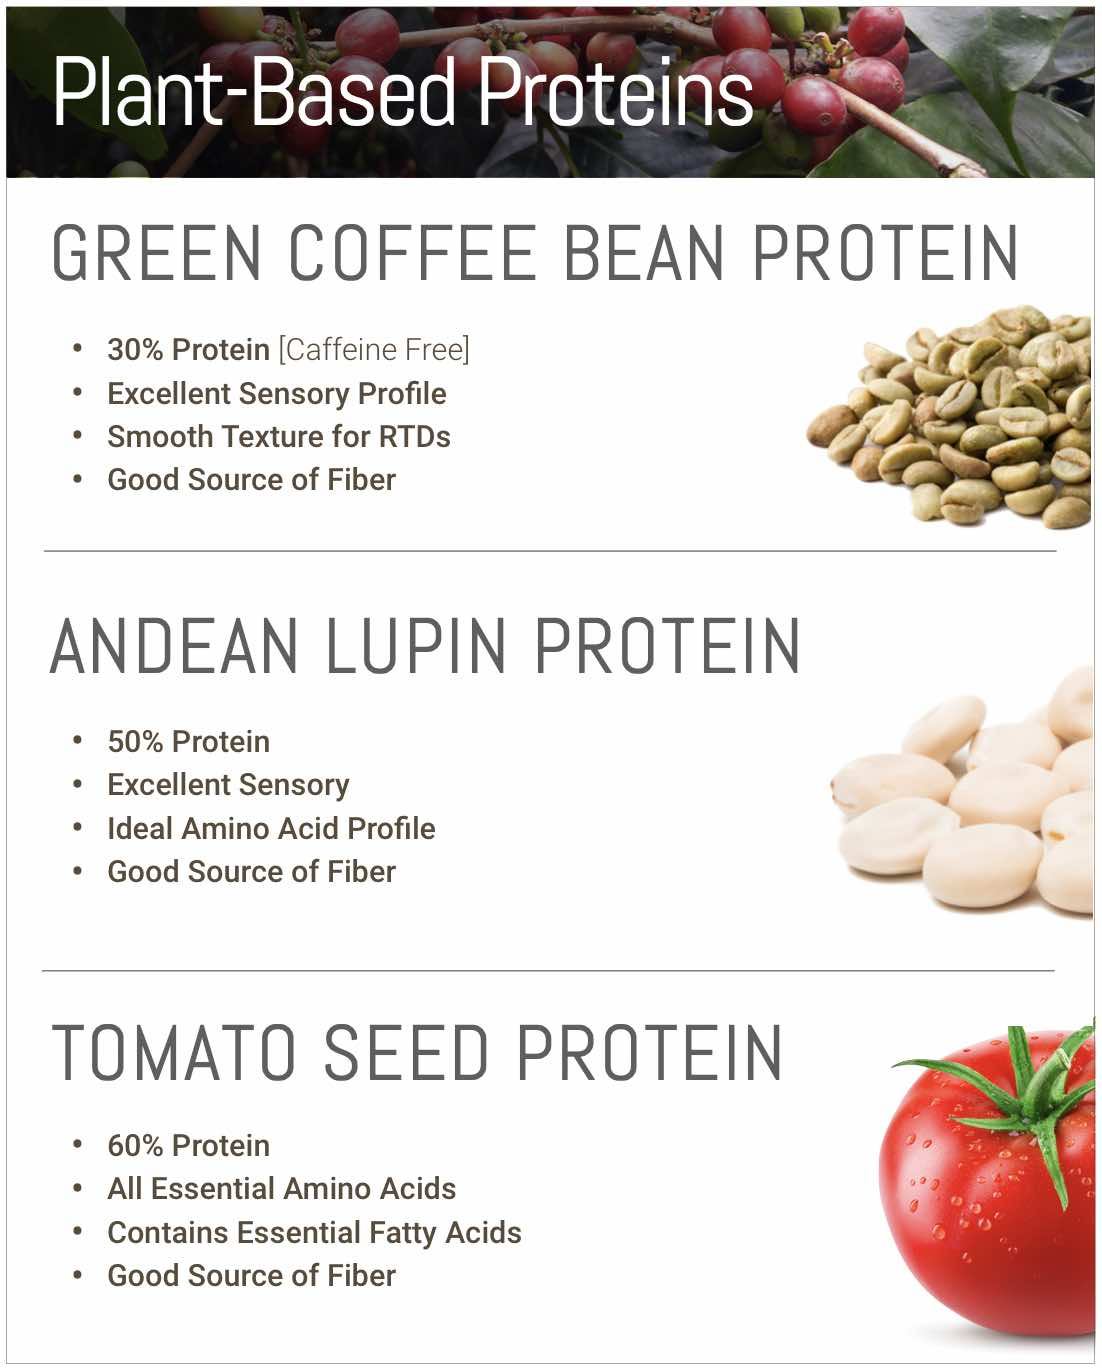 Plant Protein from coffee tomato seed and Andean lupin